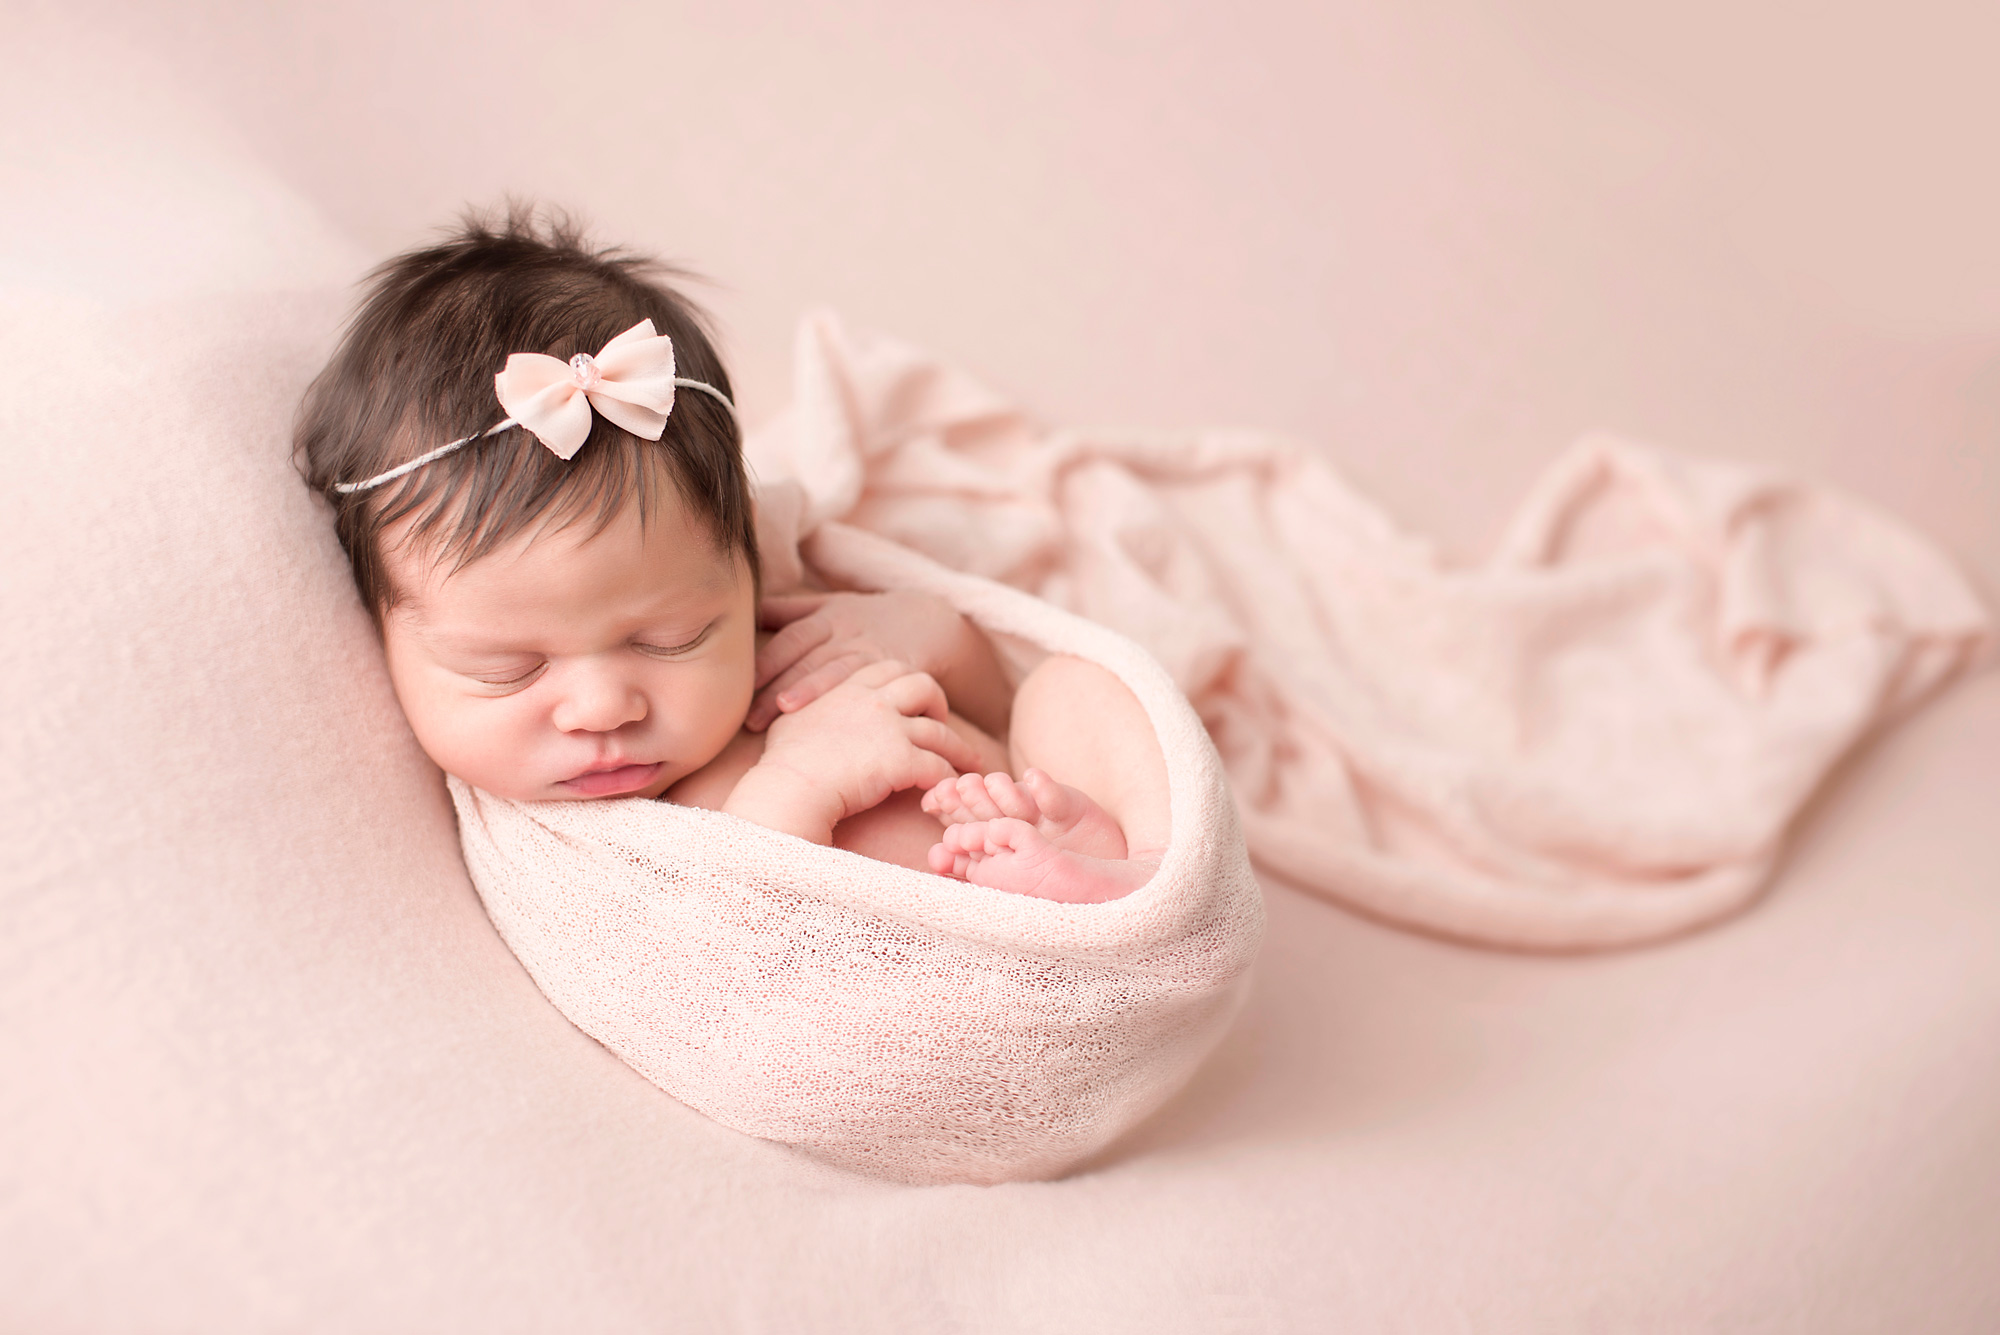 Top 7 tips for a successful newborn portrait session